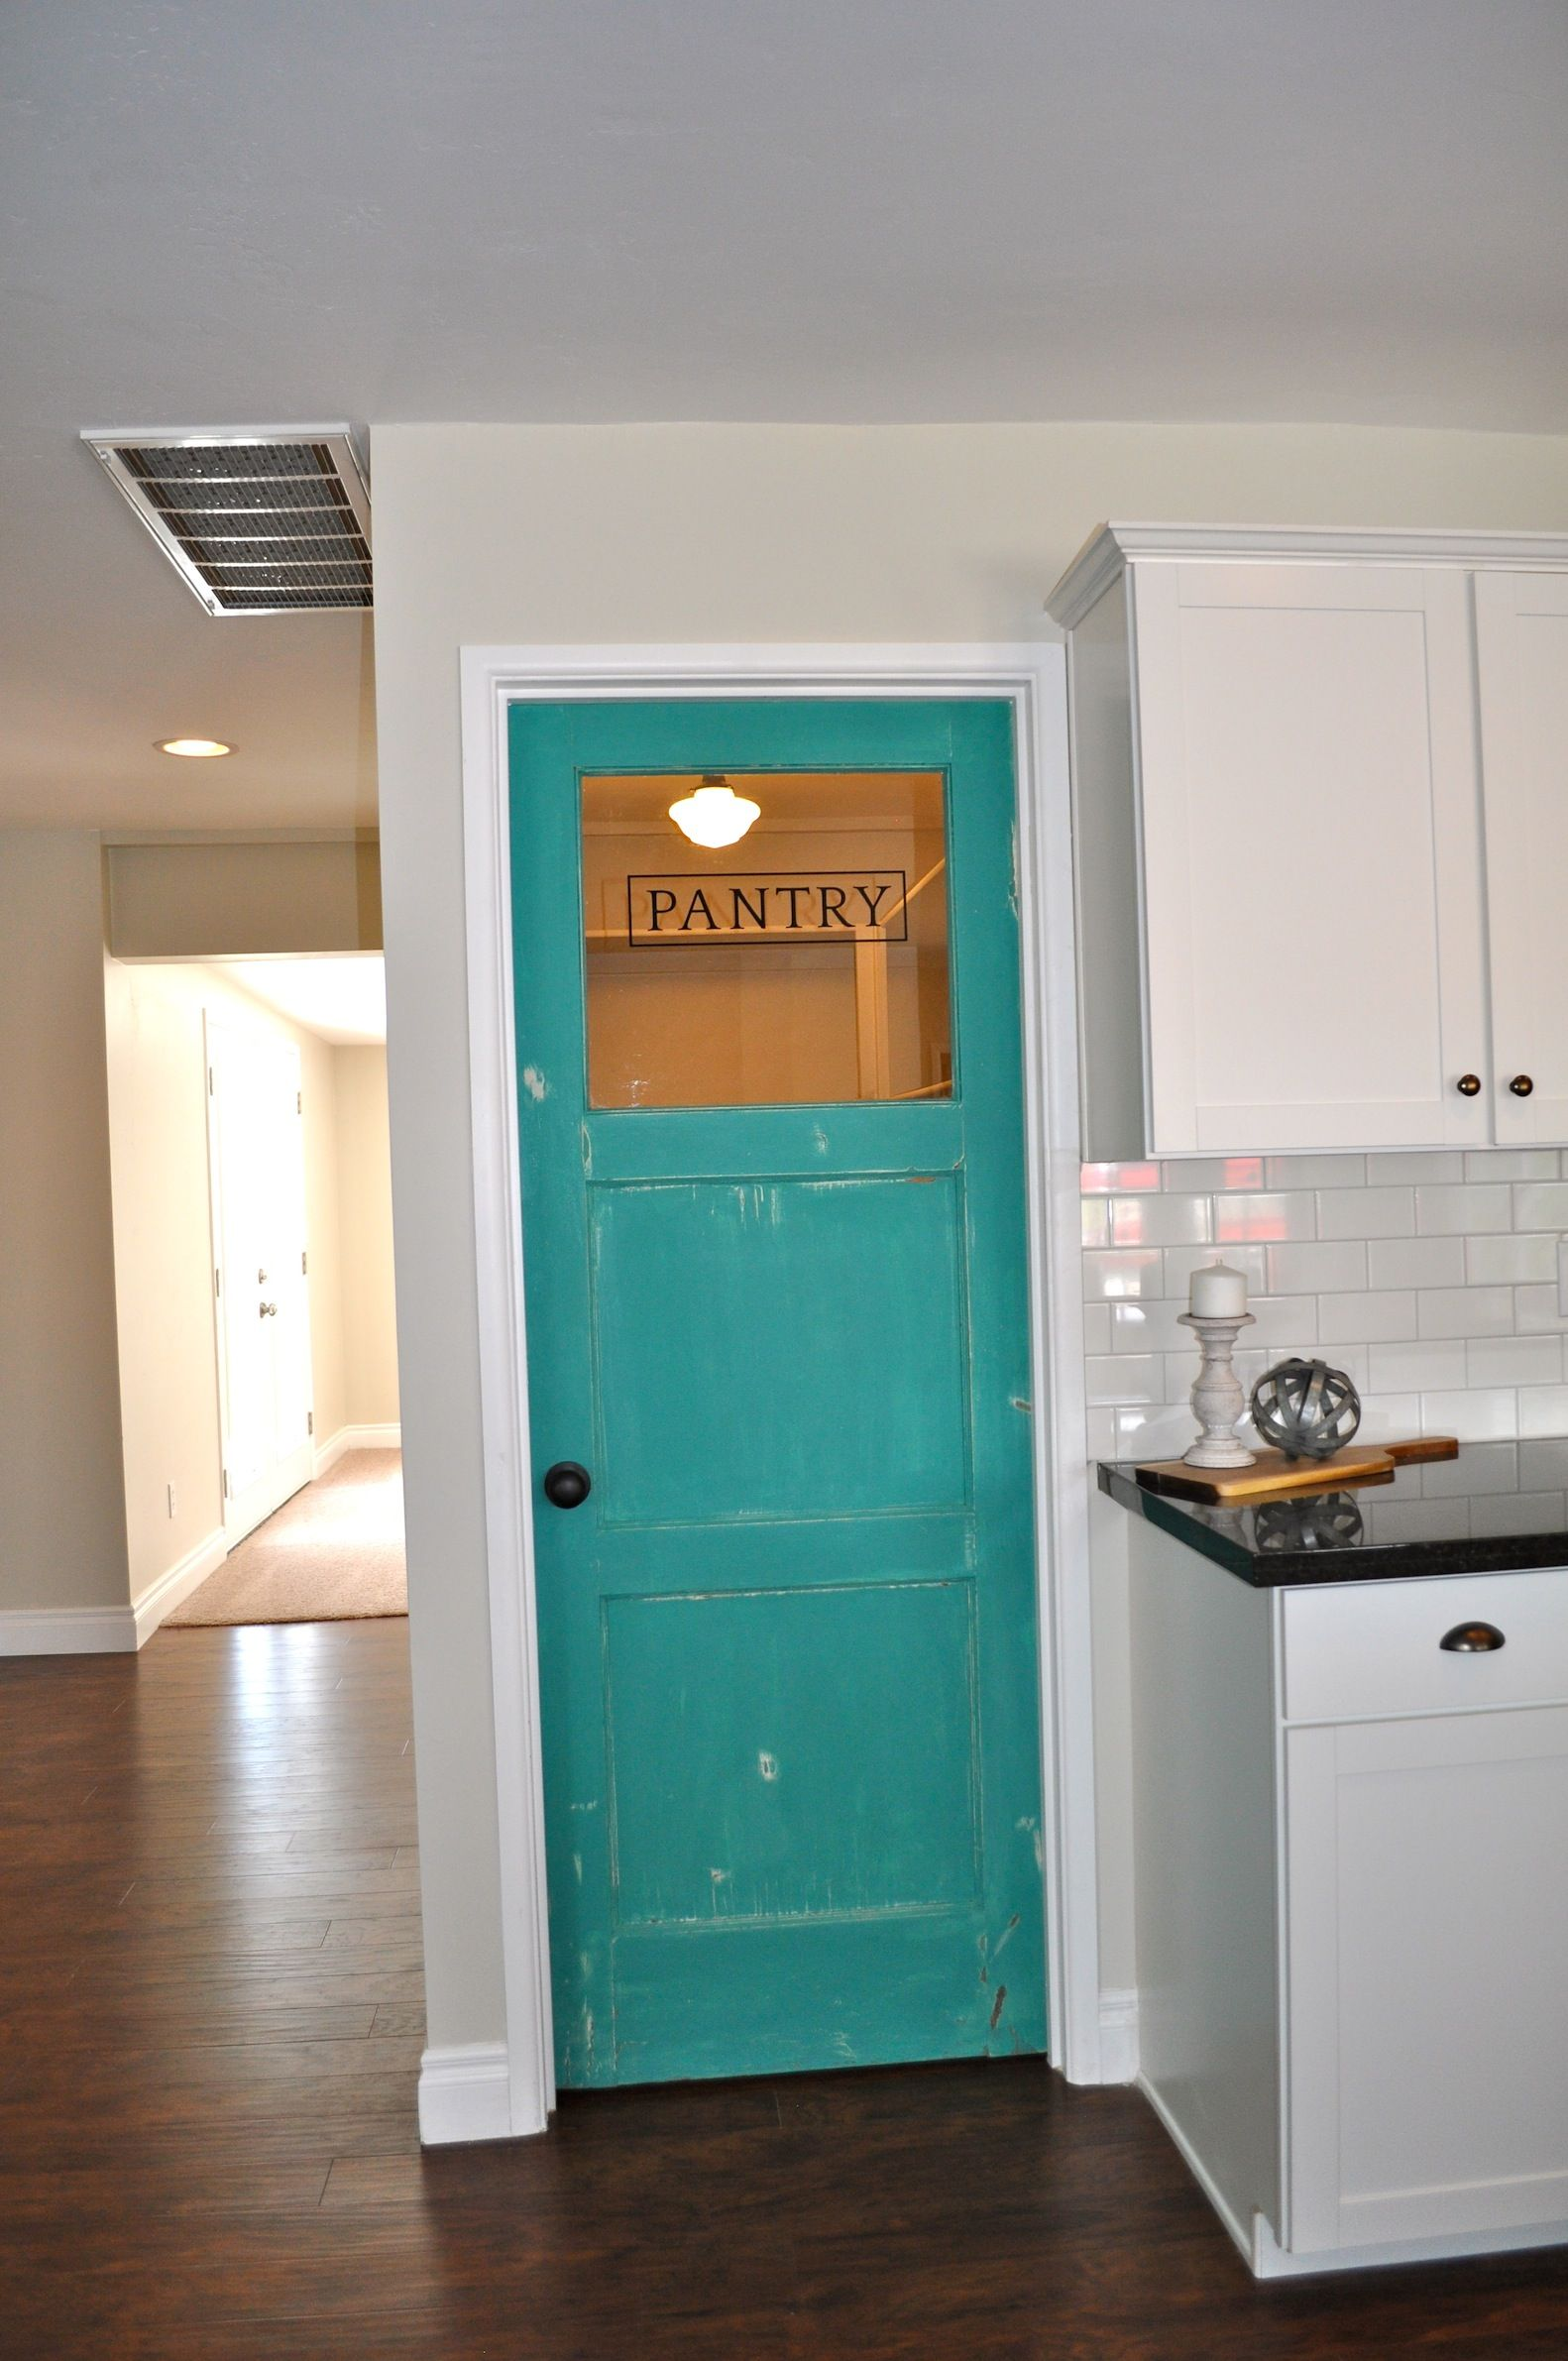 Pantry Door - by Rafterhouse. | kitchens | Pinterest | Pantry, Doors ...